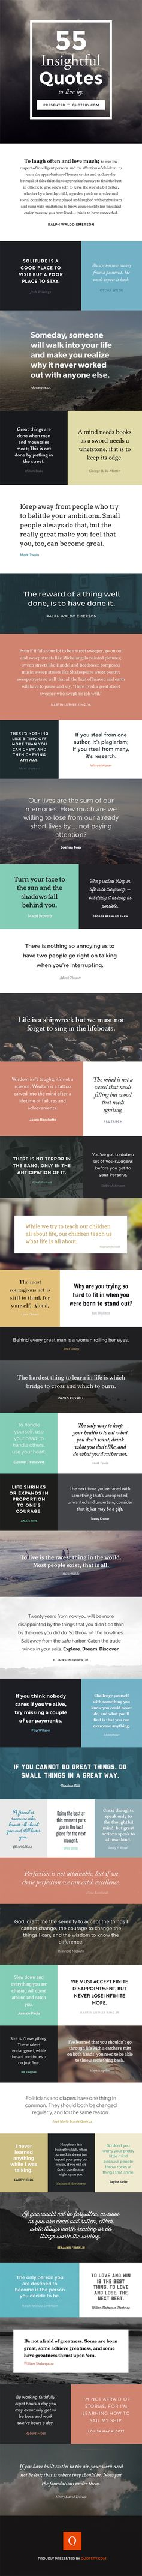 55 insightful quotes to live by, presented on an infographic.